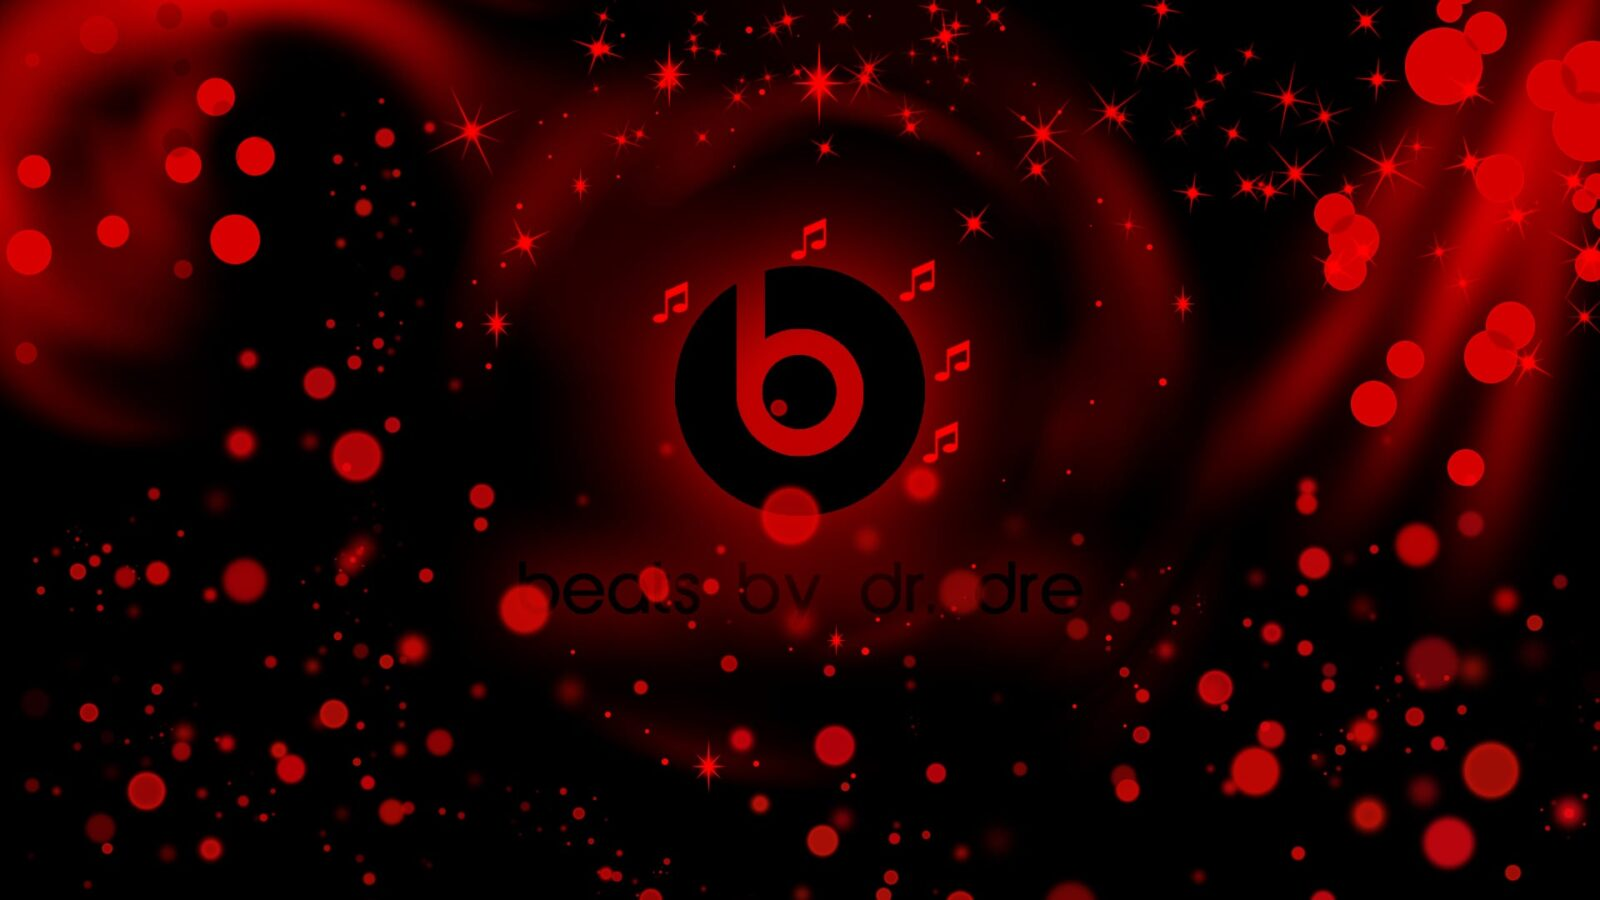 Black logo Beats By Dr Dre abstract 1920x1080 wallpaper